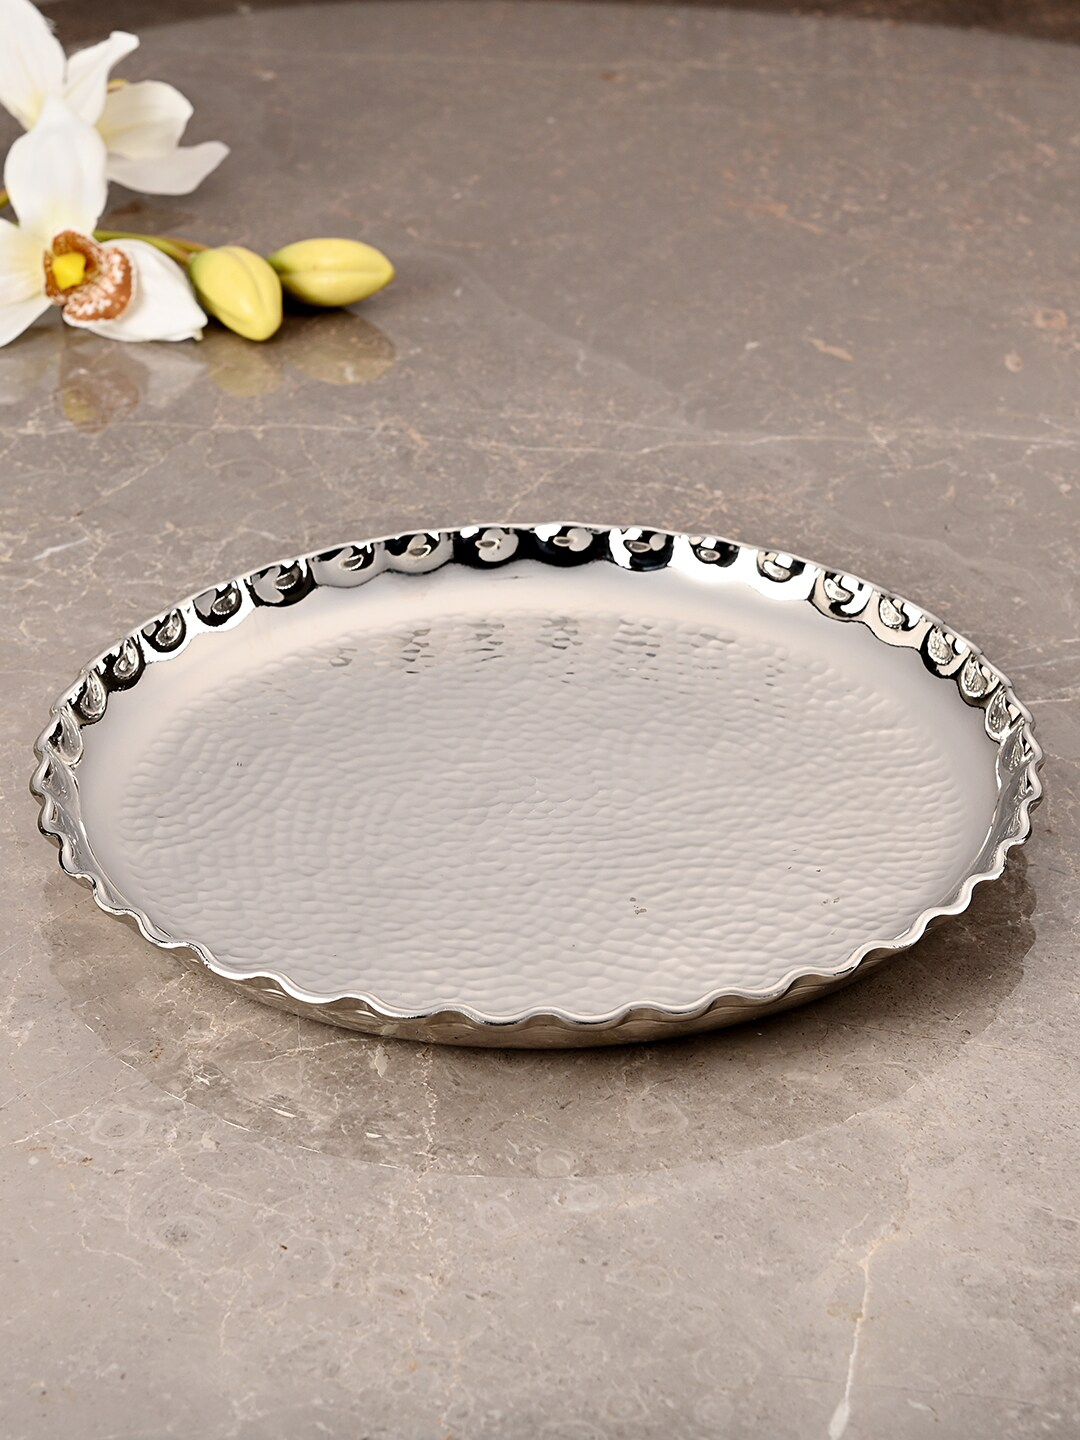 Pure Home and Living Silver Hammered Decorative Plate